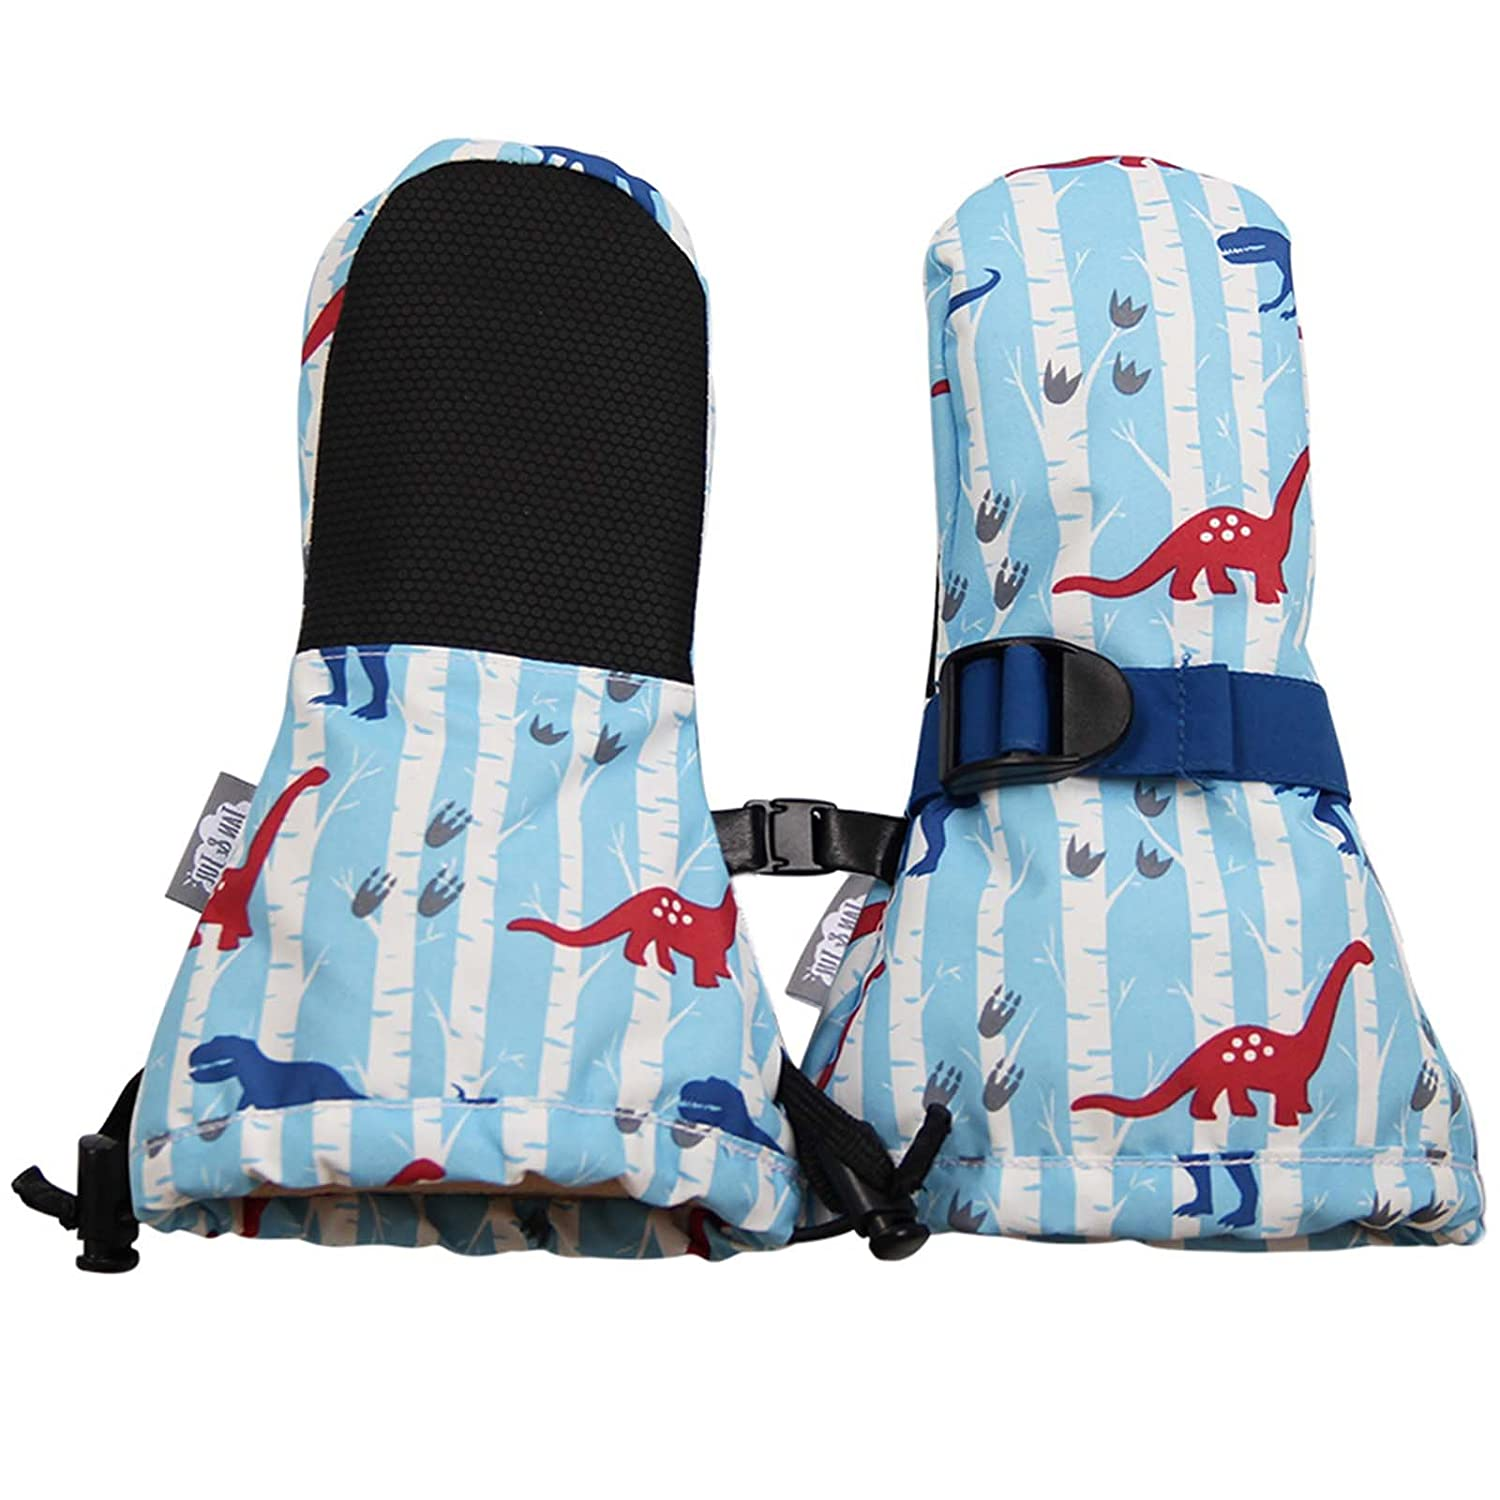 Waterproof Stay-on Winter Snow and Ski Mittens Fleece-Lined for Baby Toddler Girls and Boys (XS: 0-2Y, Snow Mitten: Dinosaur) 24-11XS